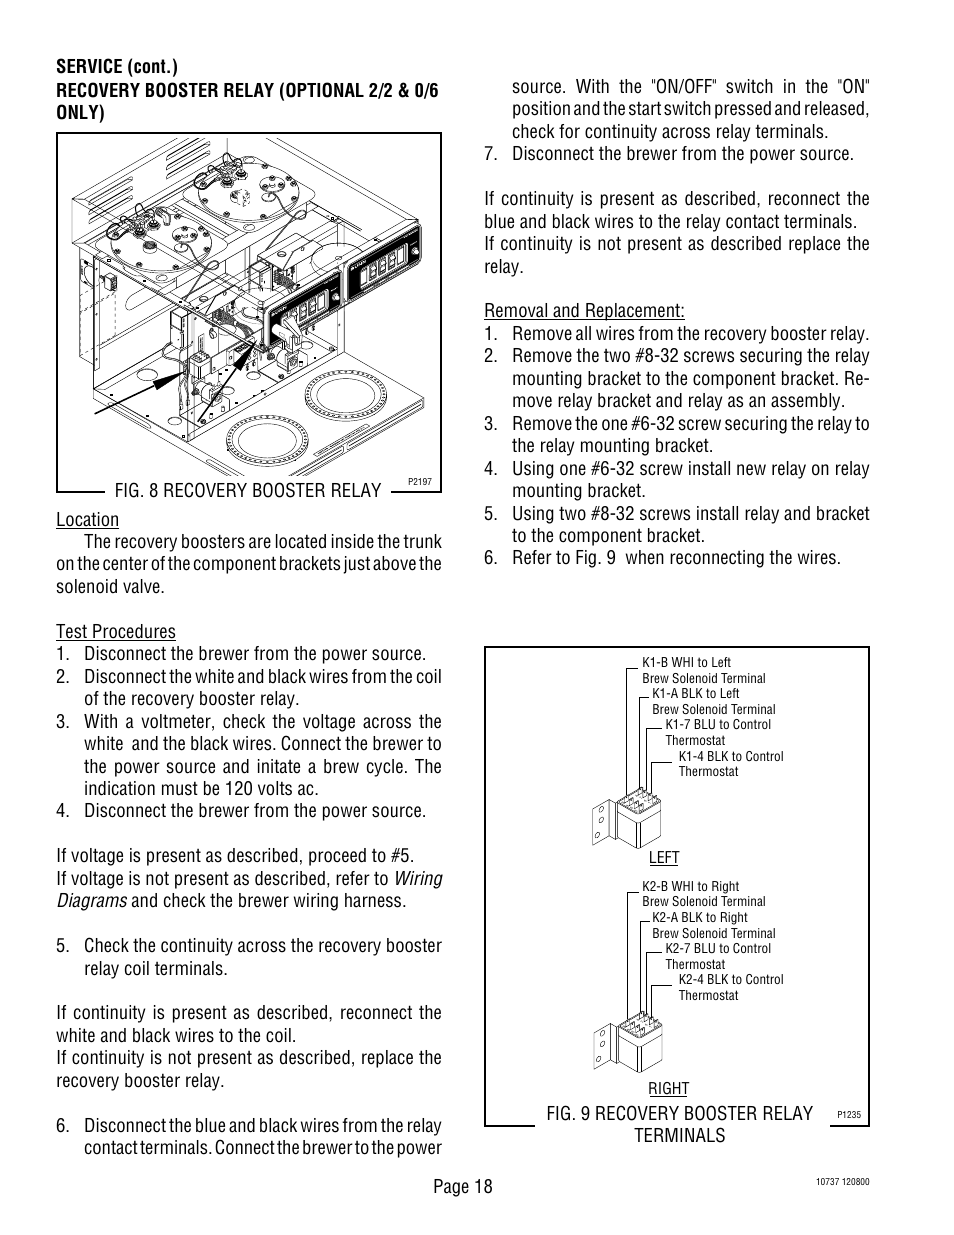 Bunn Cw Wiring Diagram Guide And Troubleshooting Of Twin Furnace Images Gallery